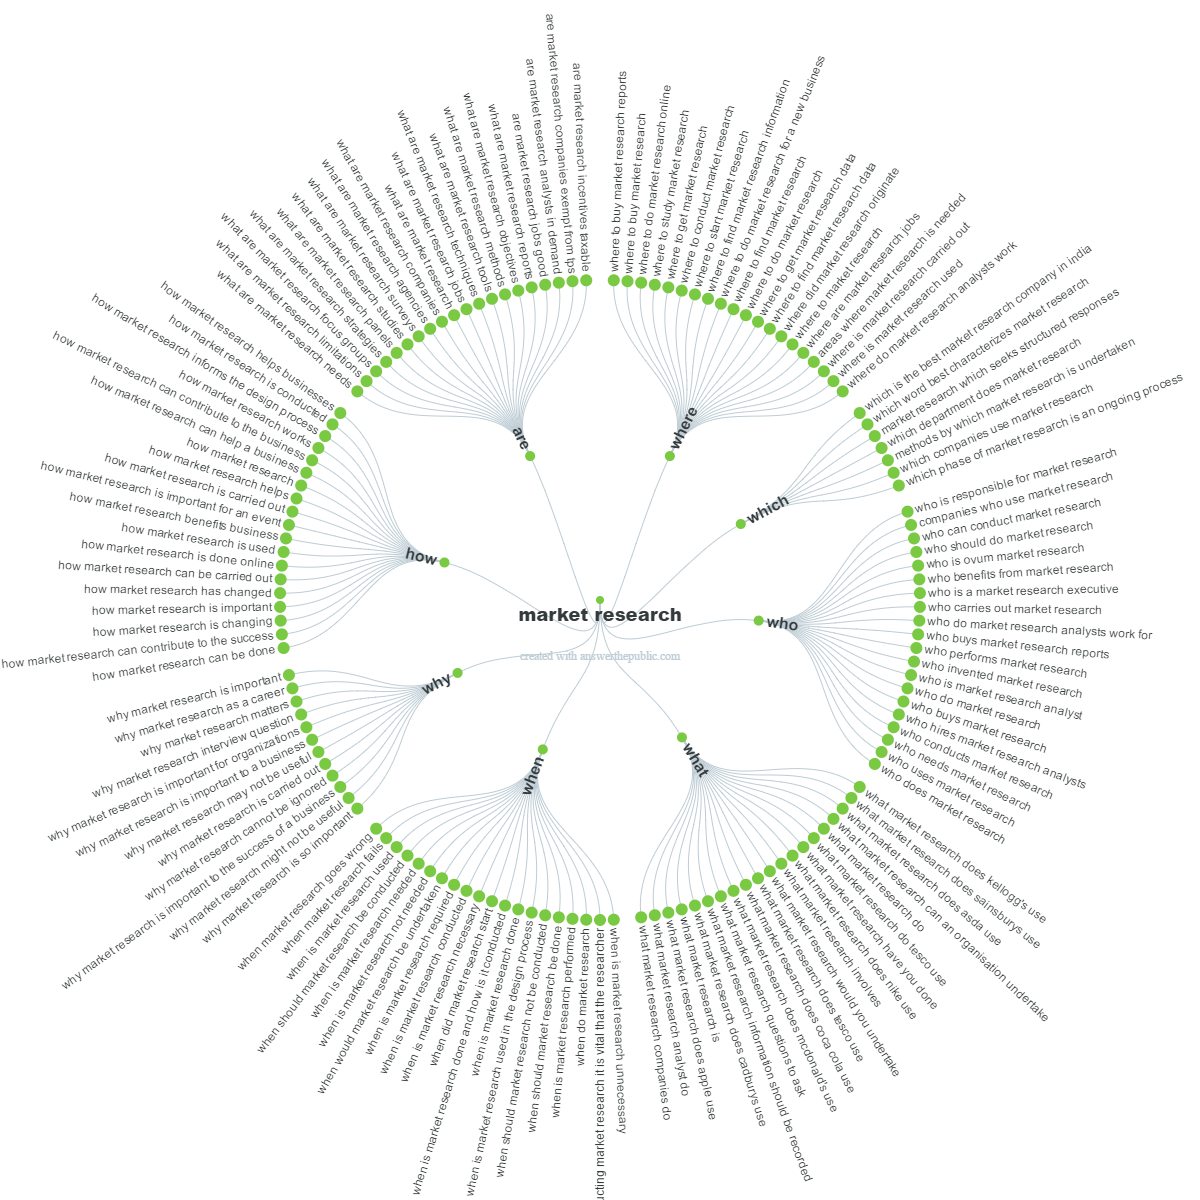 Visualisation of questions relating to market research